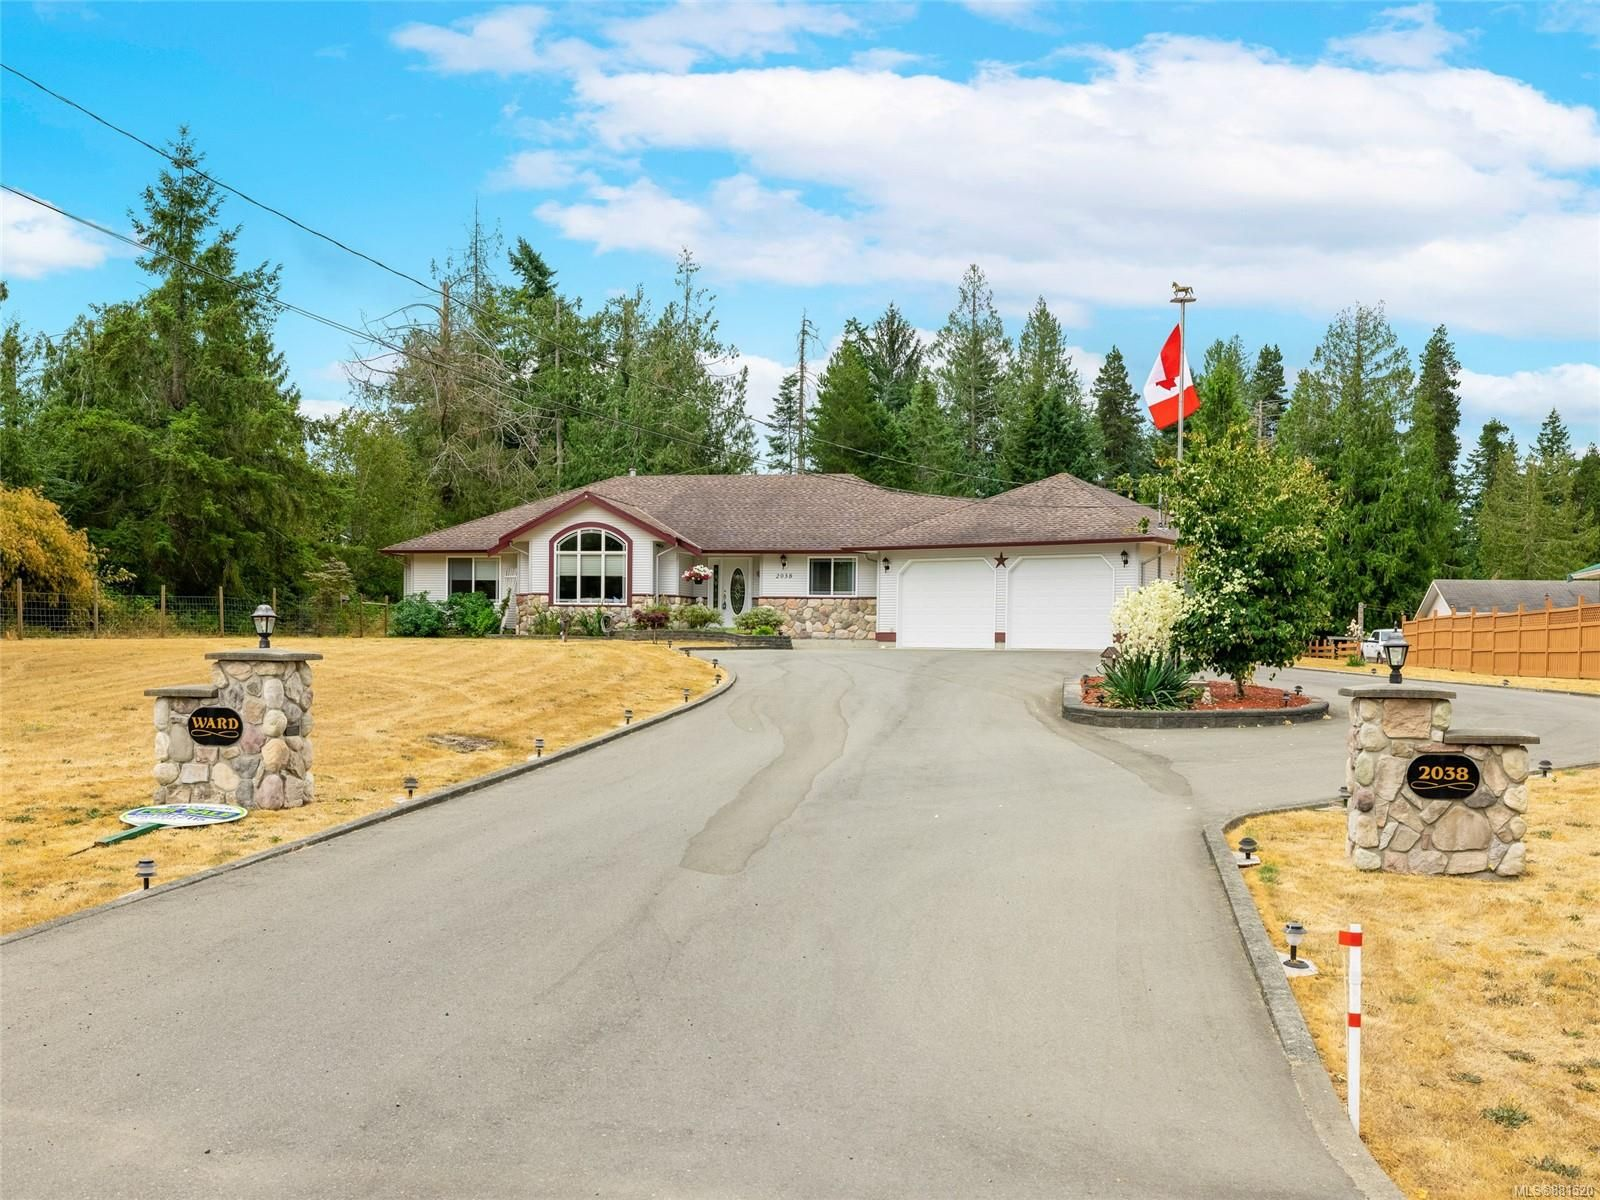 Main Photo: 2038 Pierpont Rd in Coombs: PQ Errington/Coombs/Hilliers House for sale (Parksville/Qualicum)  : MLS®# 881520